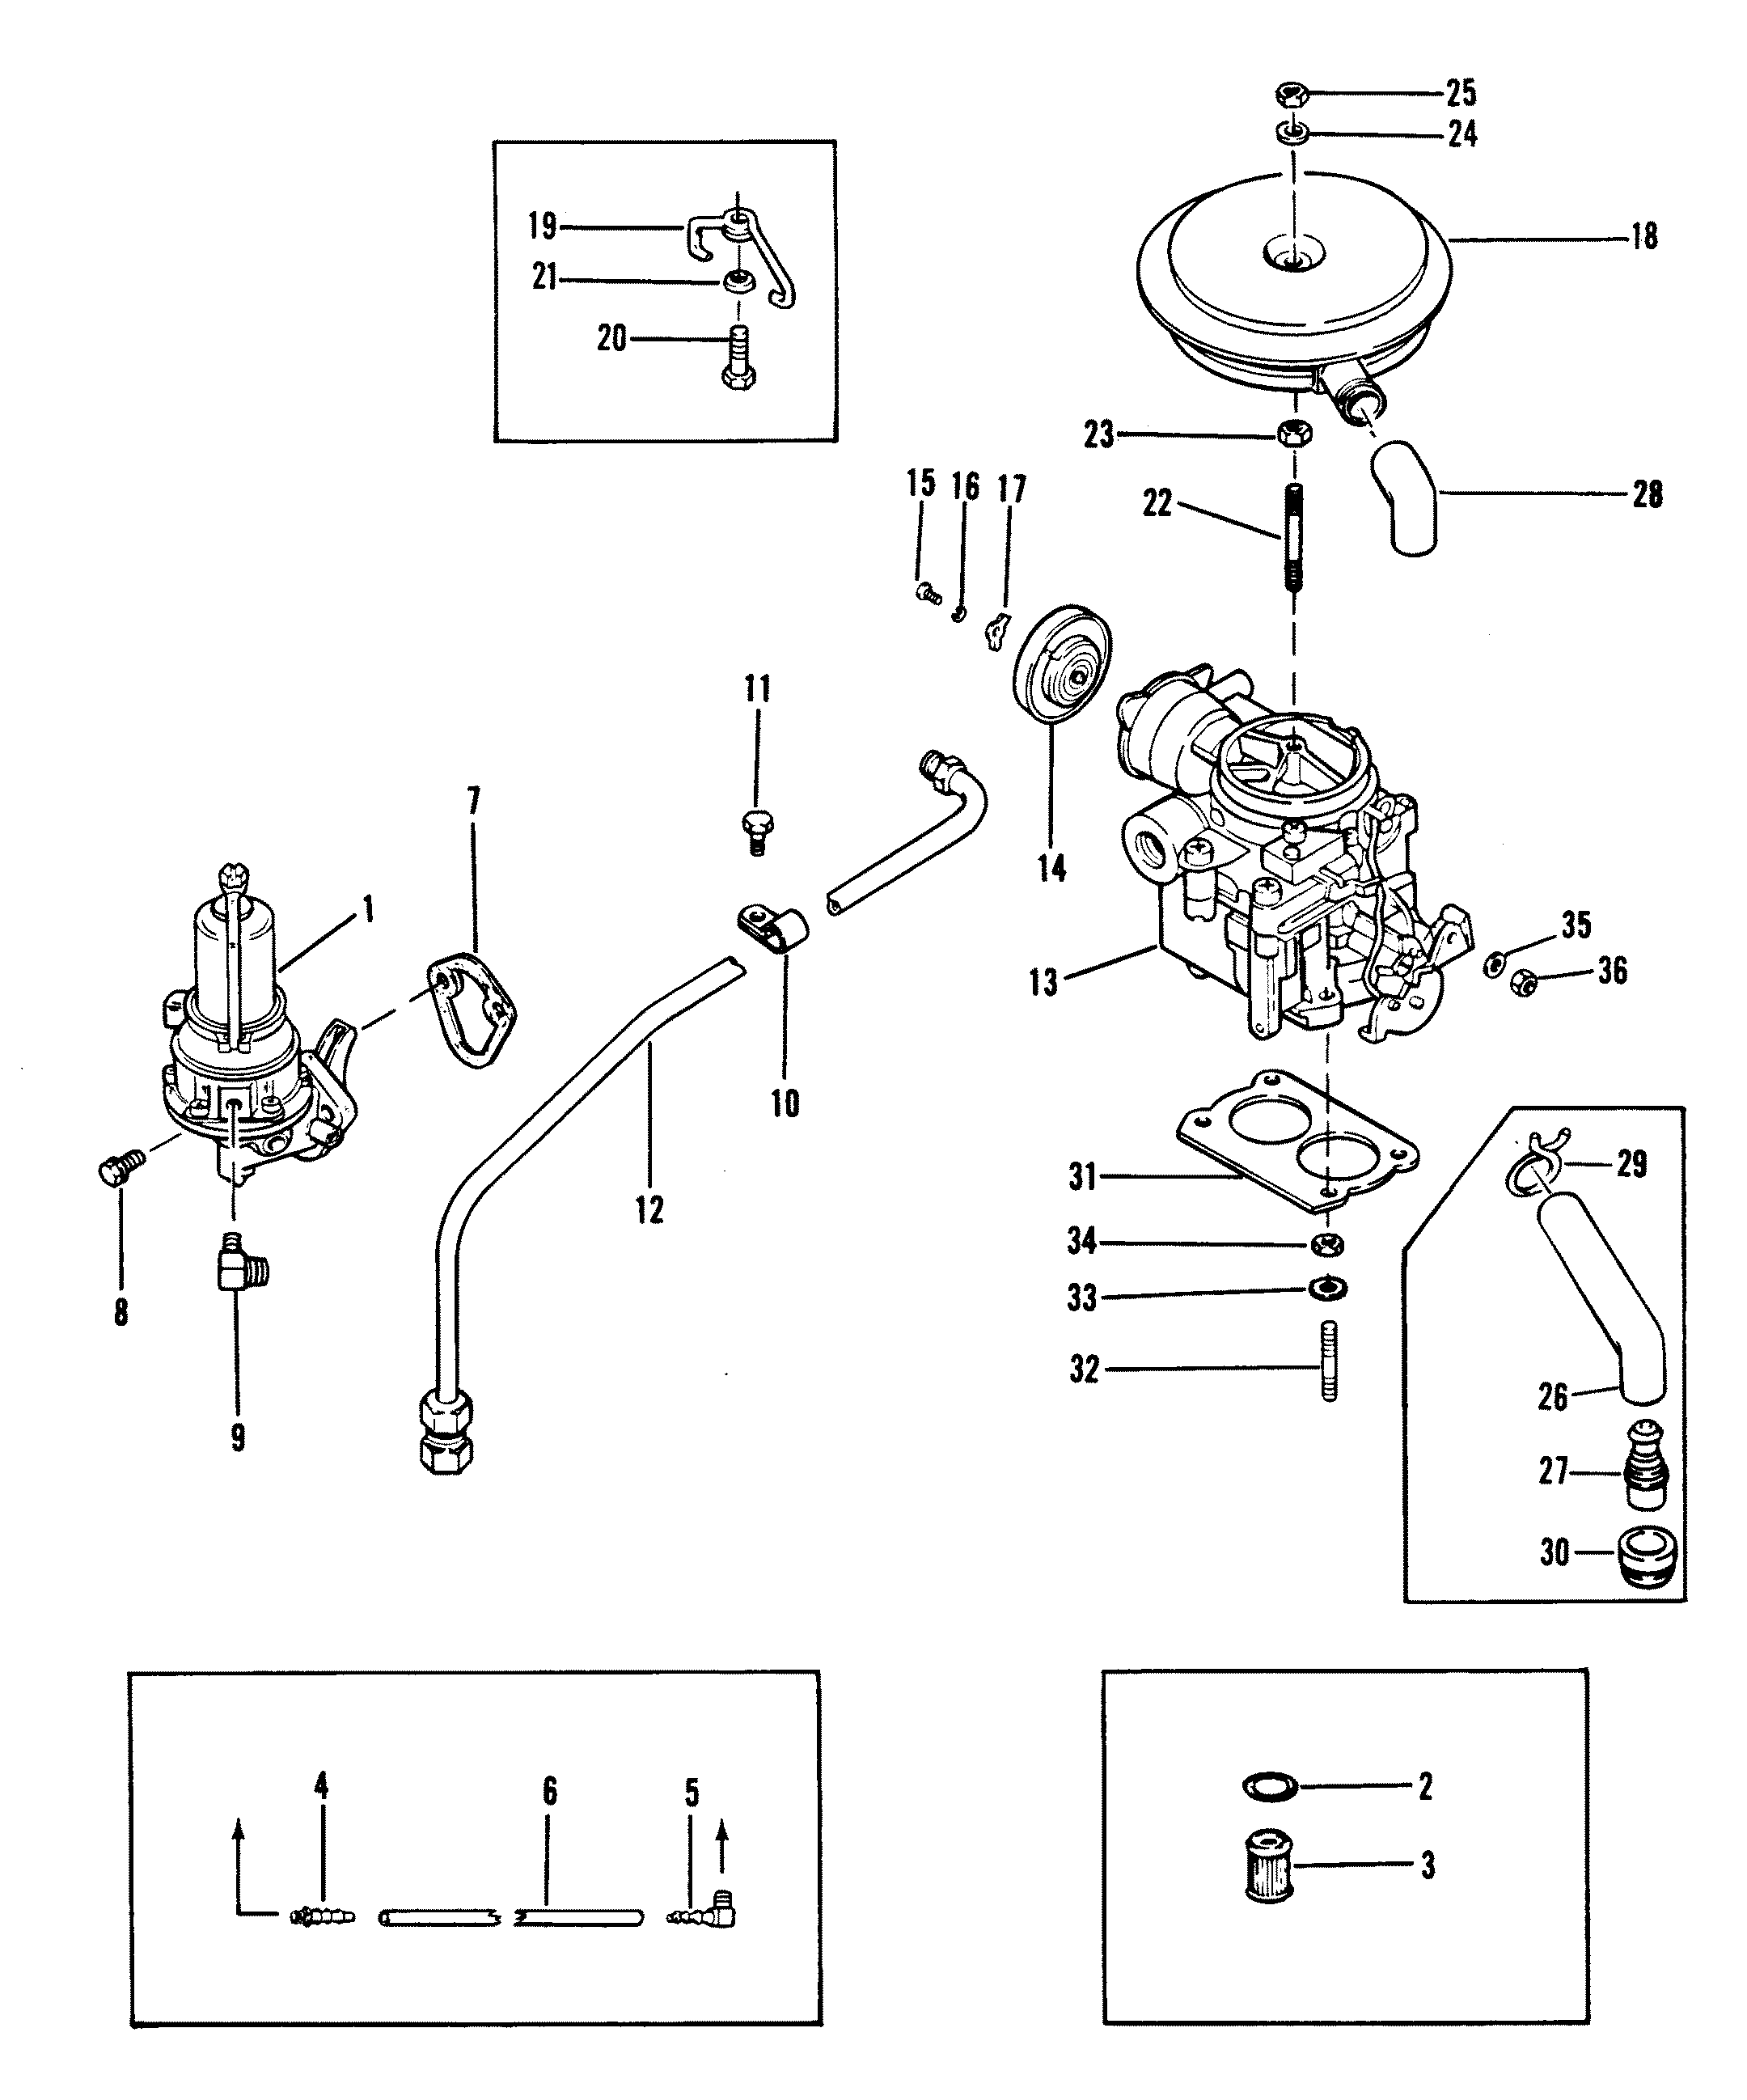 3 0l Gm Engine Parts 3 Free Engine Image For User Manual Download